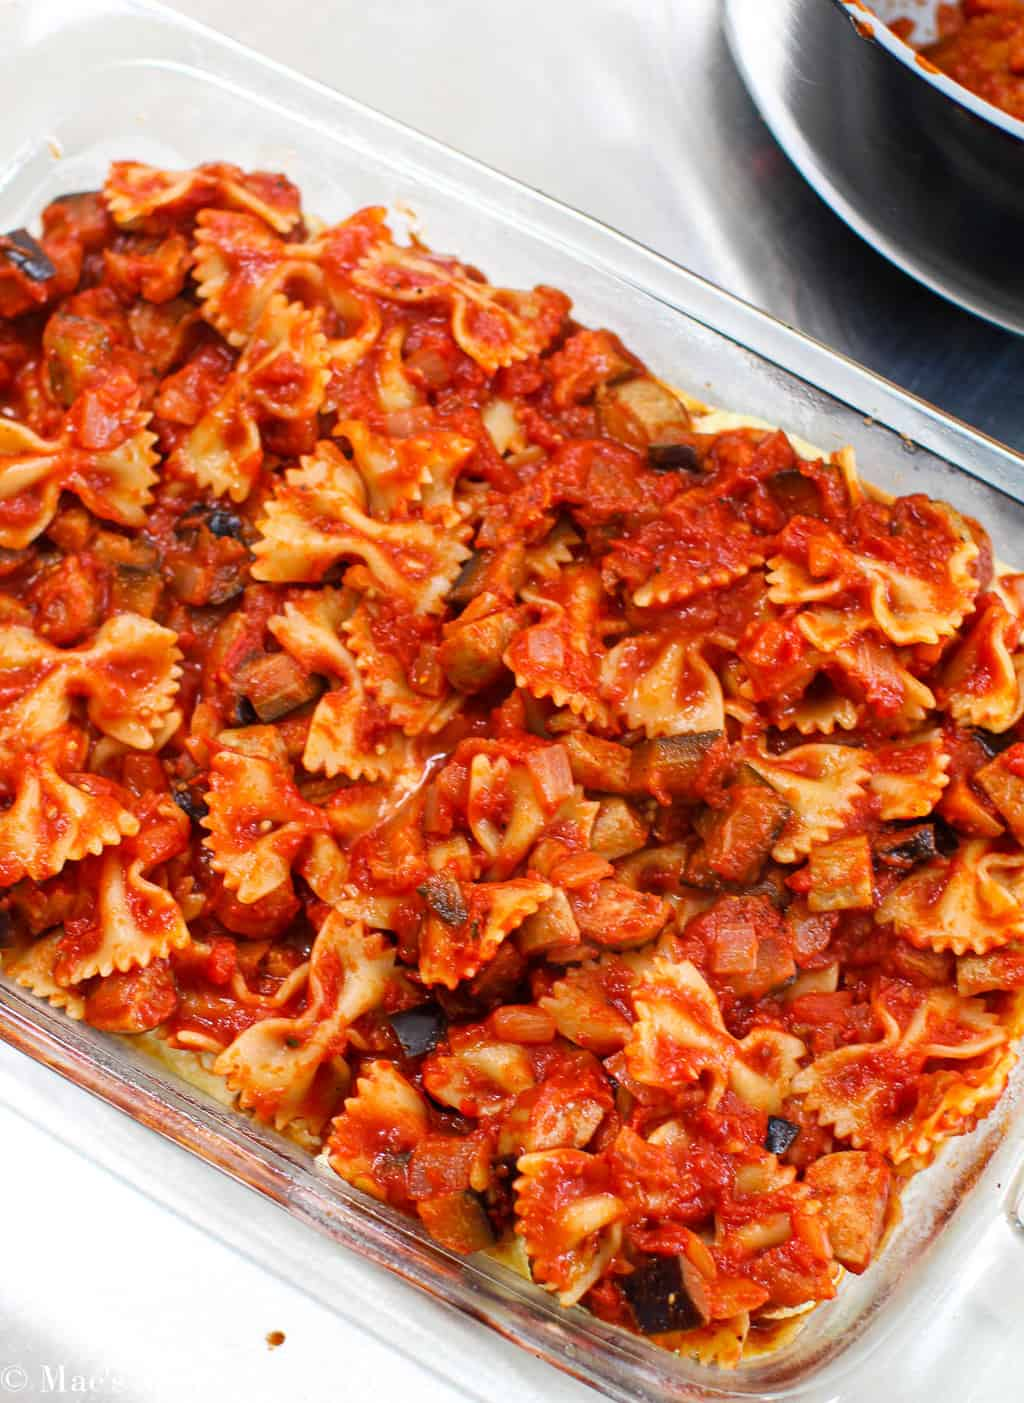 A baking pan with the tomato pasta in it